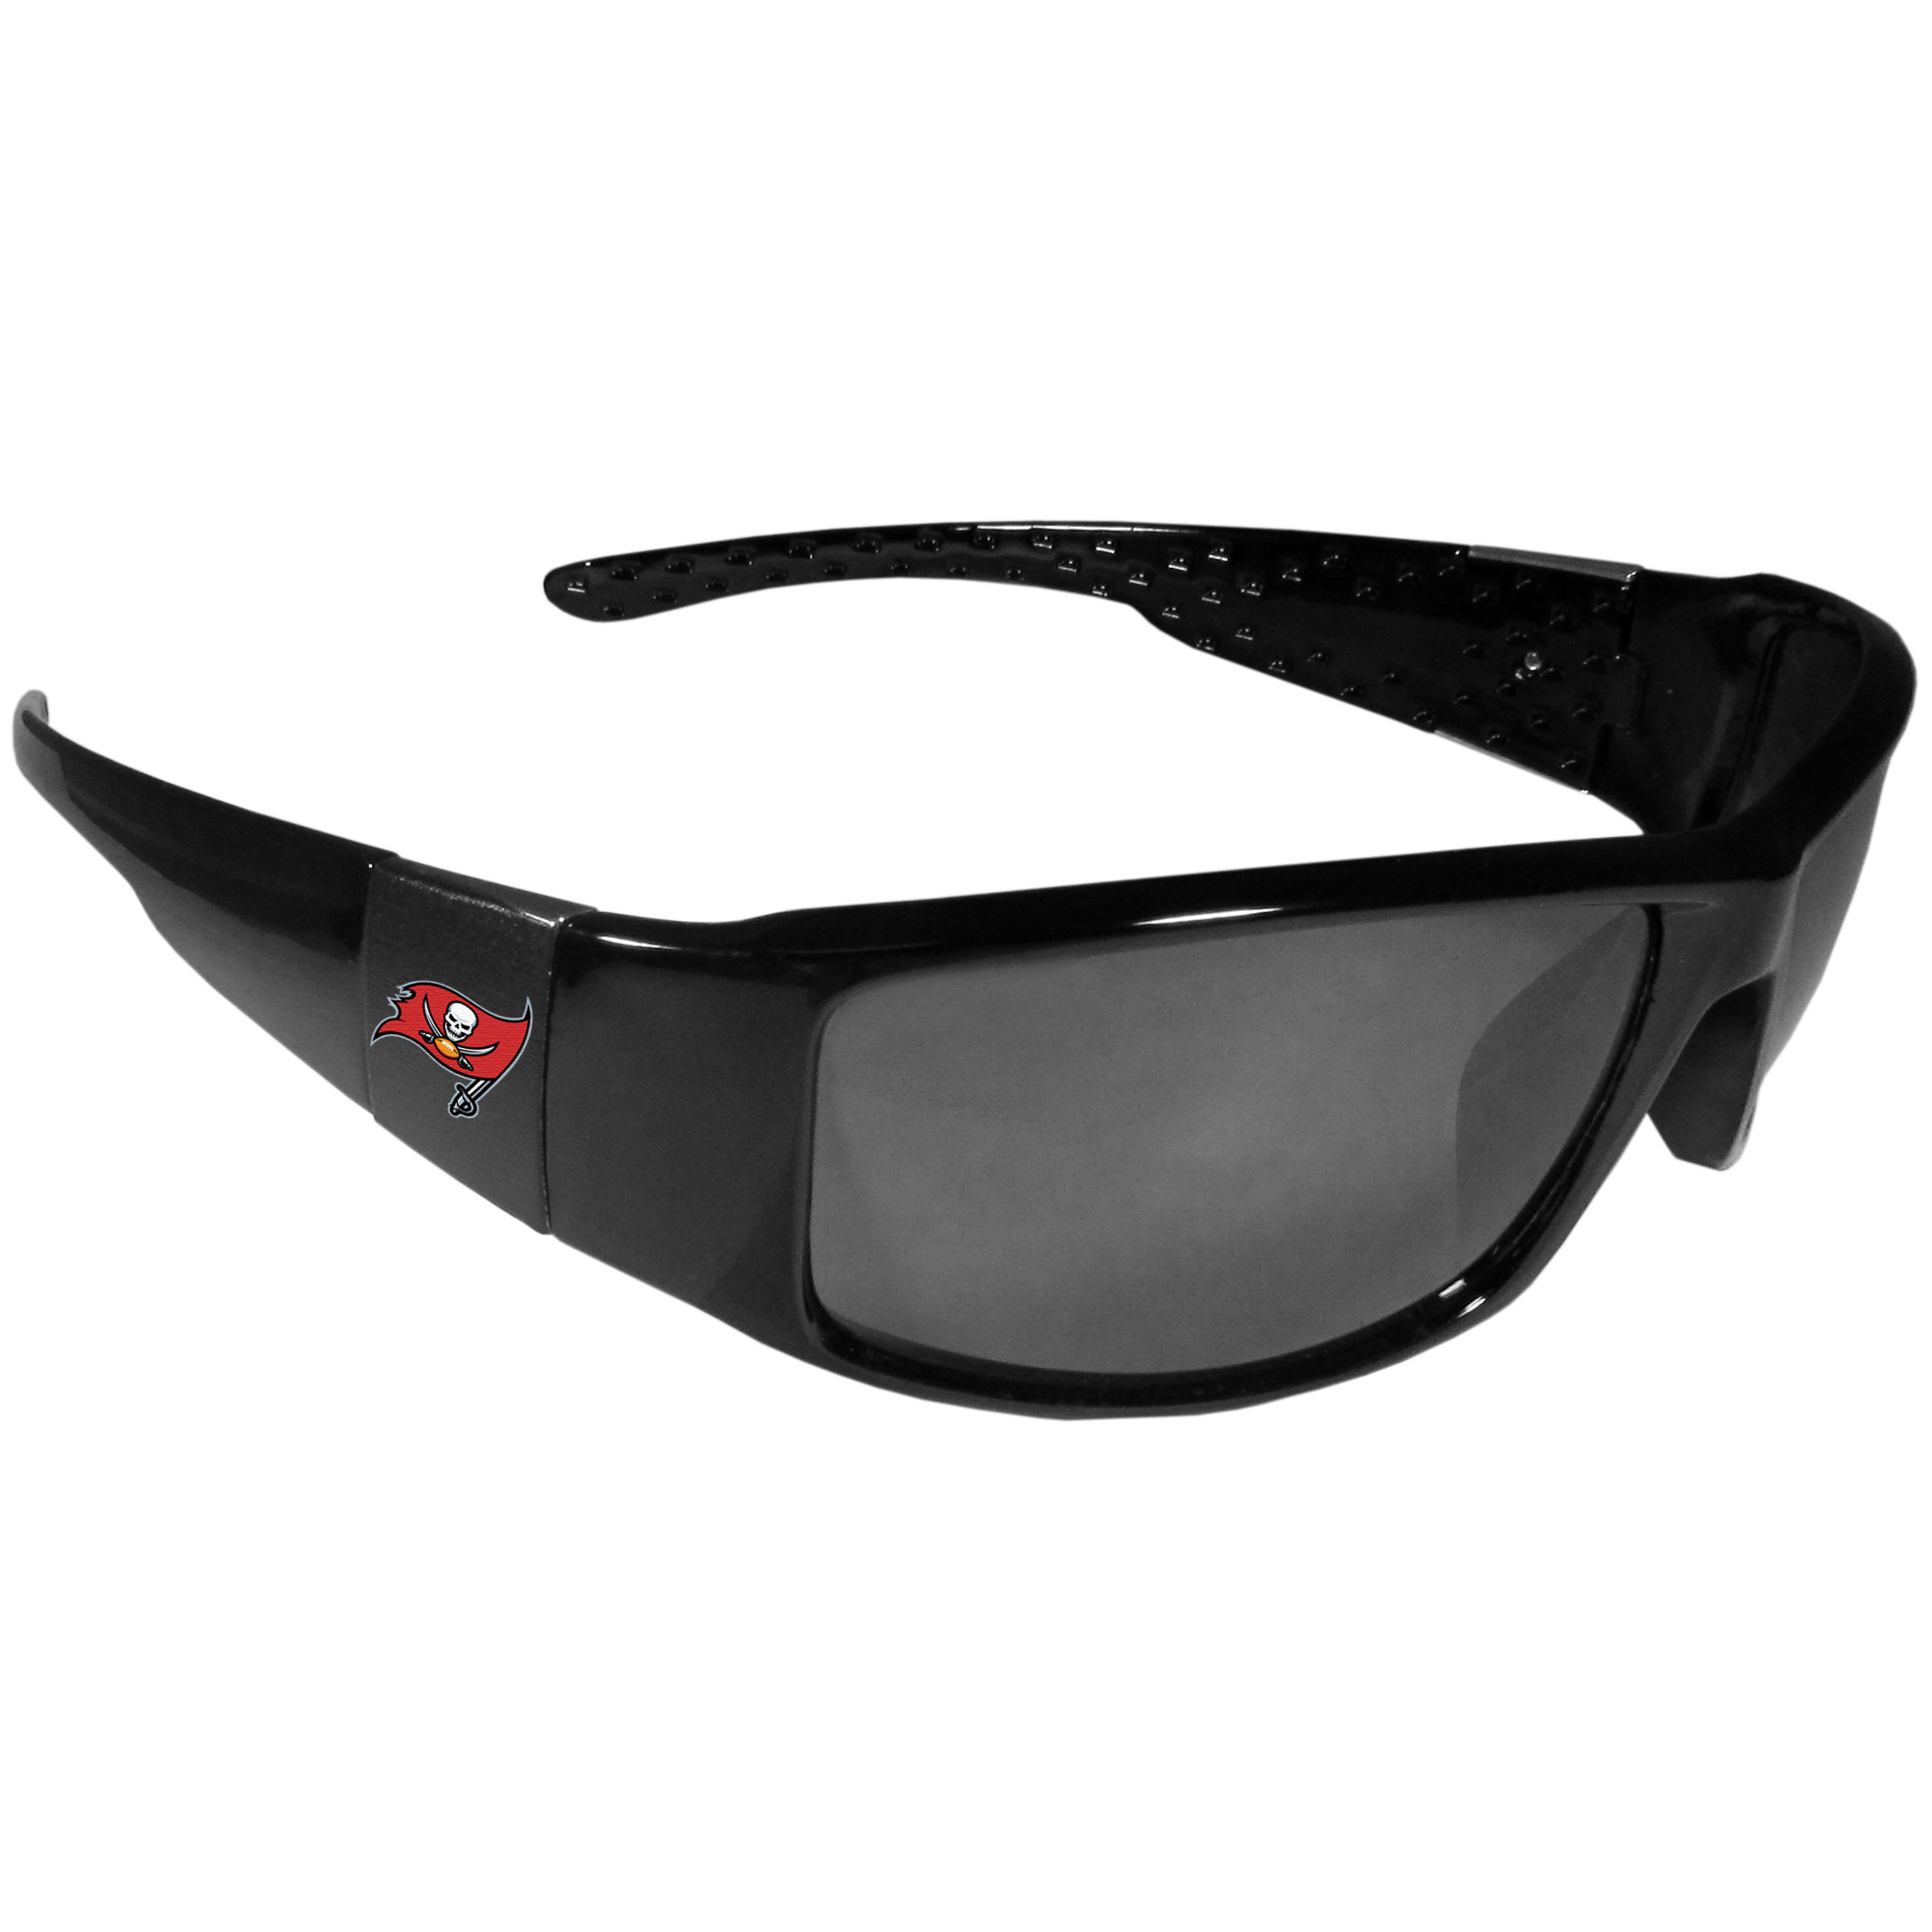 Tampa Bay Buccaneers Black Wrap Sunglasses - These designer inspired frames have a sleek look in all black with  Tampa Bay Buccaneers shields on each arm with a printed logo. The shades are perfect for any outdoor activity like; golfing, driving, hiking, fishing or cheering on the team at a tailgating event or at a home game day BBQ with a lens rating of 100% UVA/UVB for maximum UV protection. The high-quality frames are as durable as they are fashionable and with their classic look they are the perfect fan accessory that can be worn everyday for every occasion.